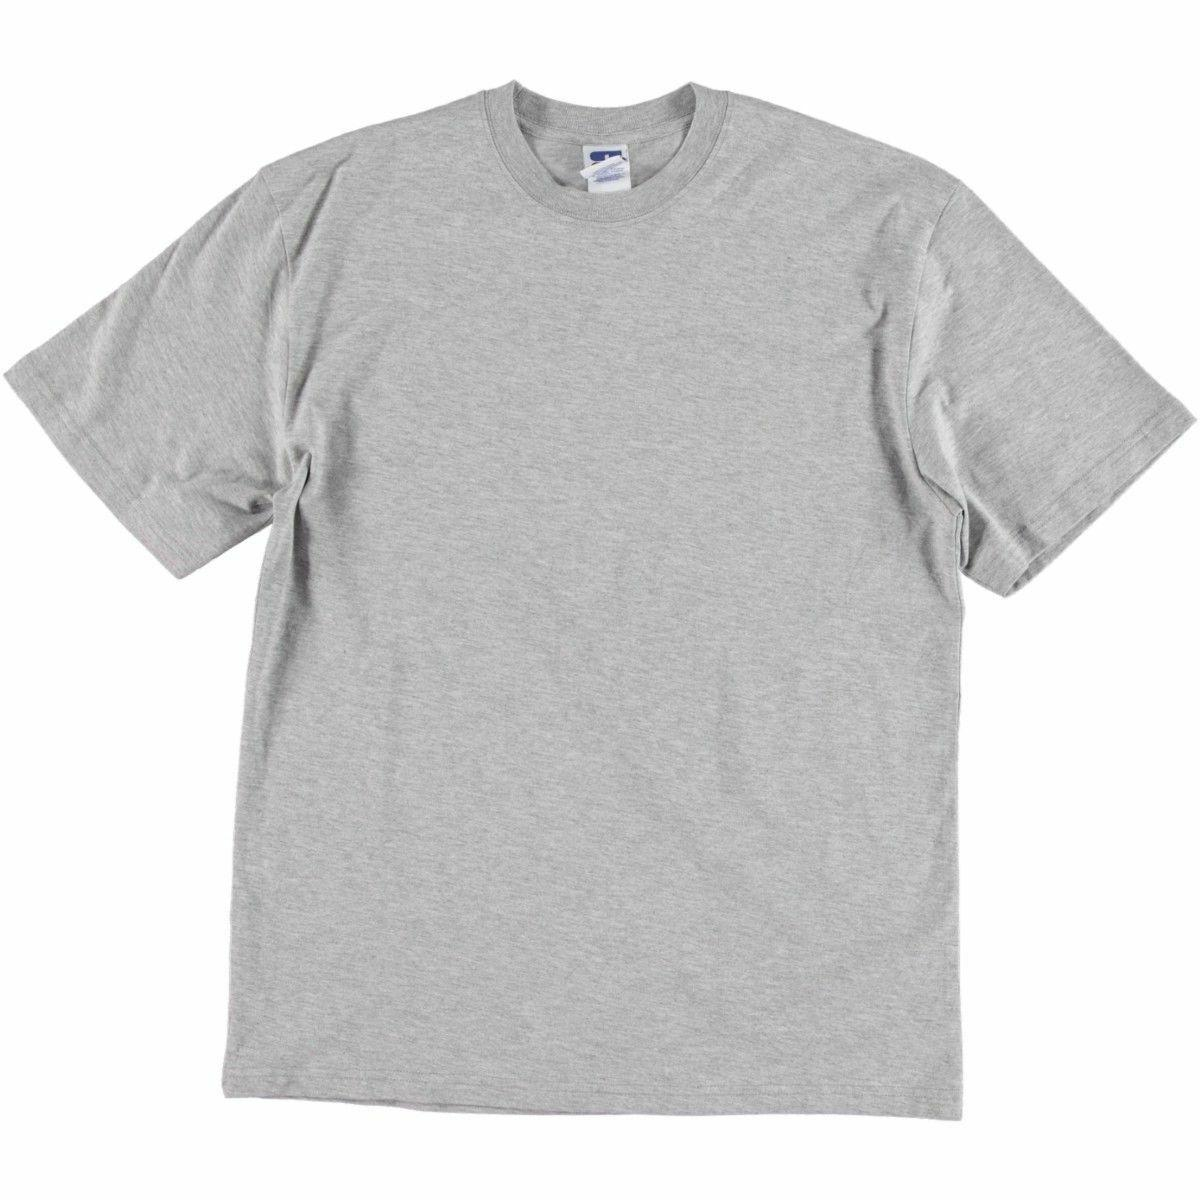 youth classic crew neck short sleeve t